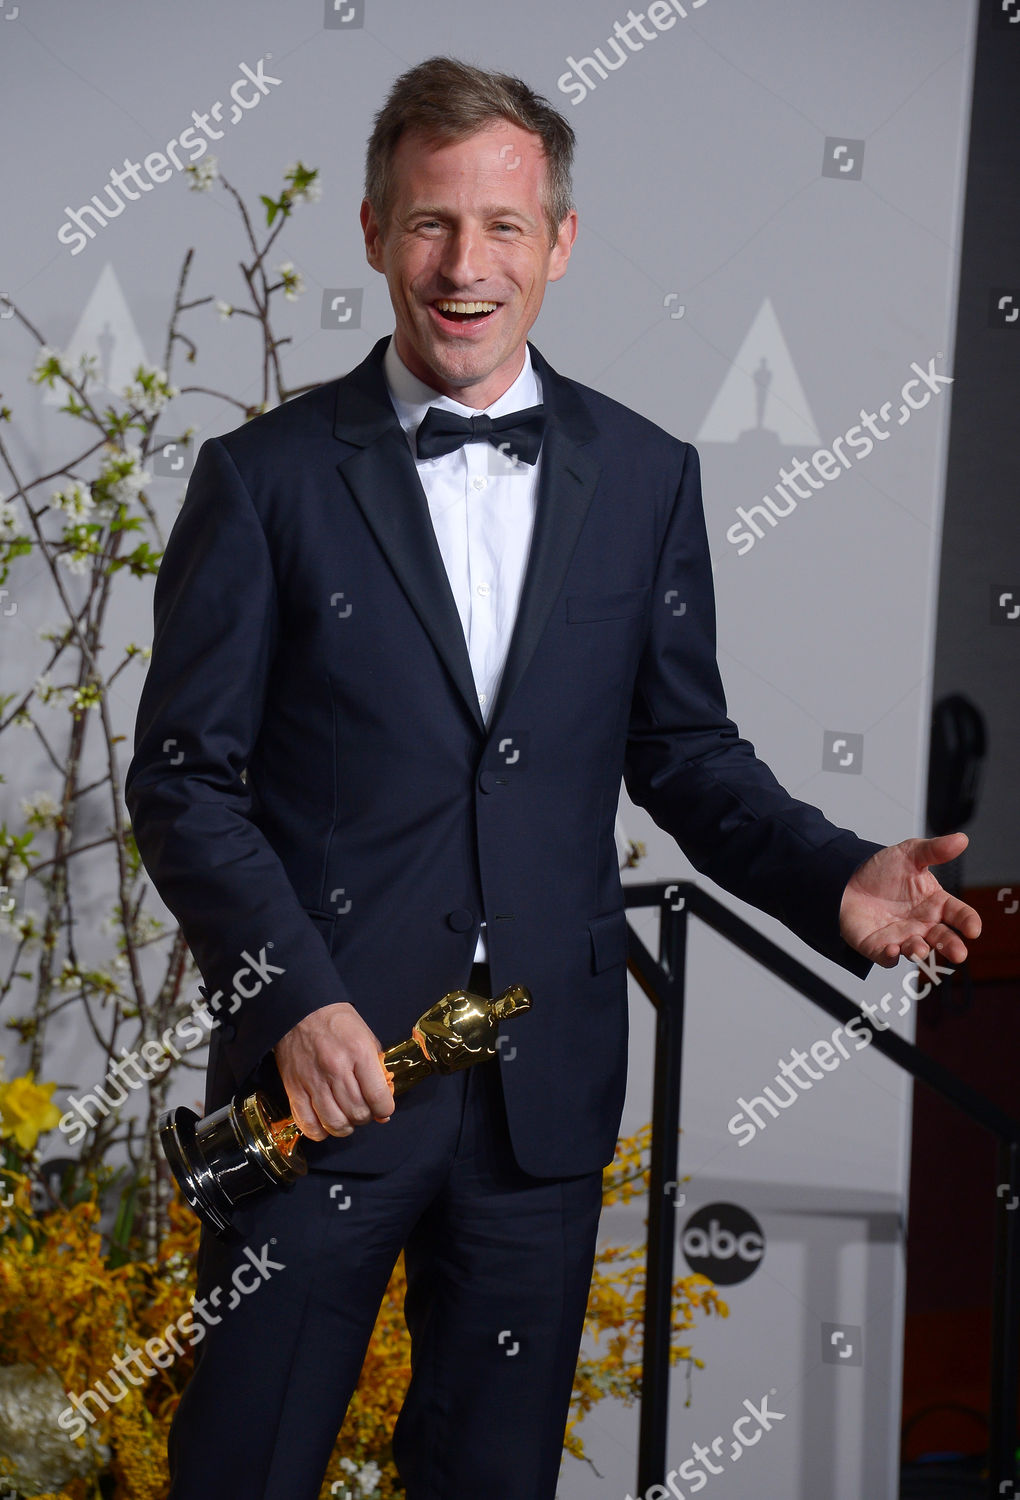 Spike Jonze Editorial Stock Photo - Stock Image | Shutterstock